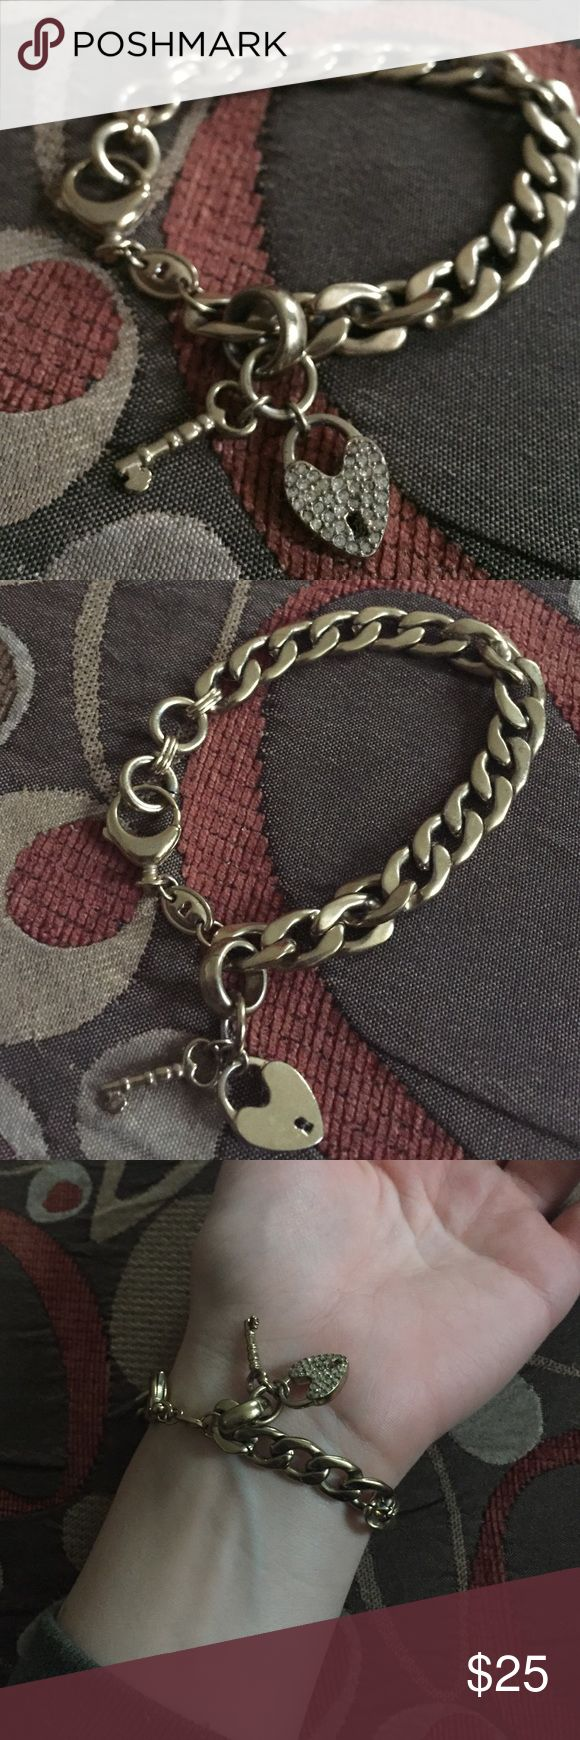 Fossil Bracelet Had for a while. Needs a bit of cleaning but still in good condition Fossil Jewelry Bracelets